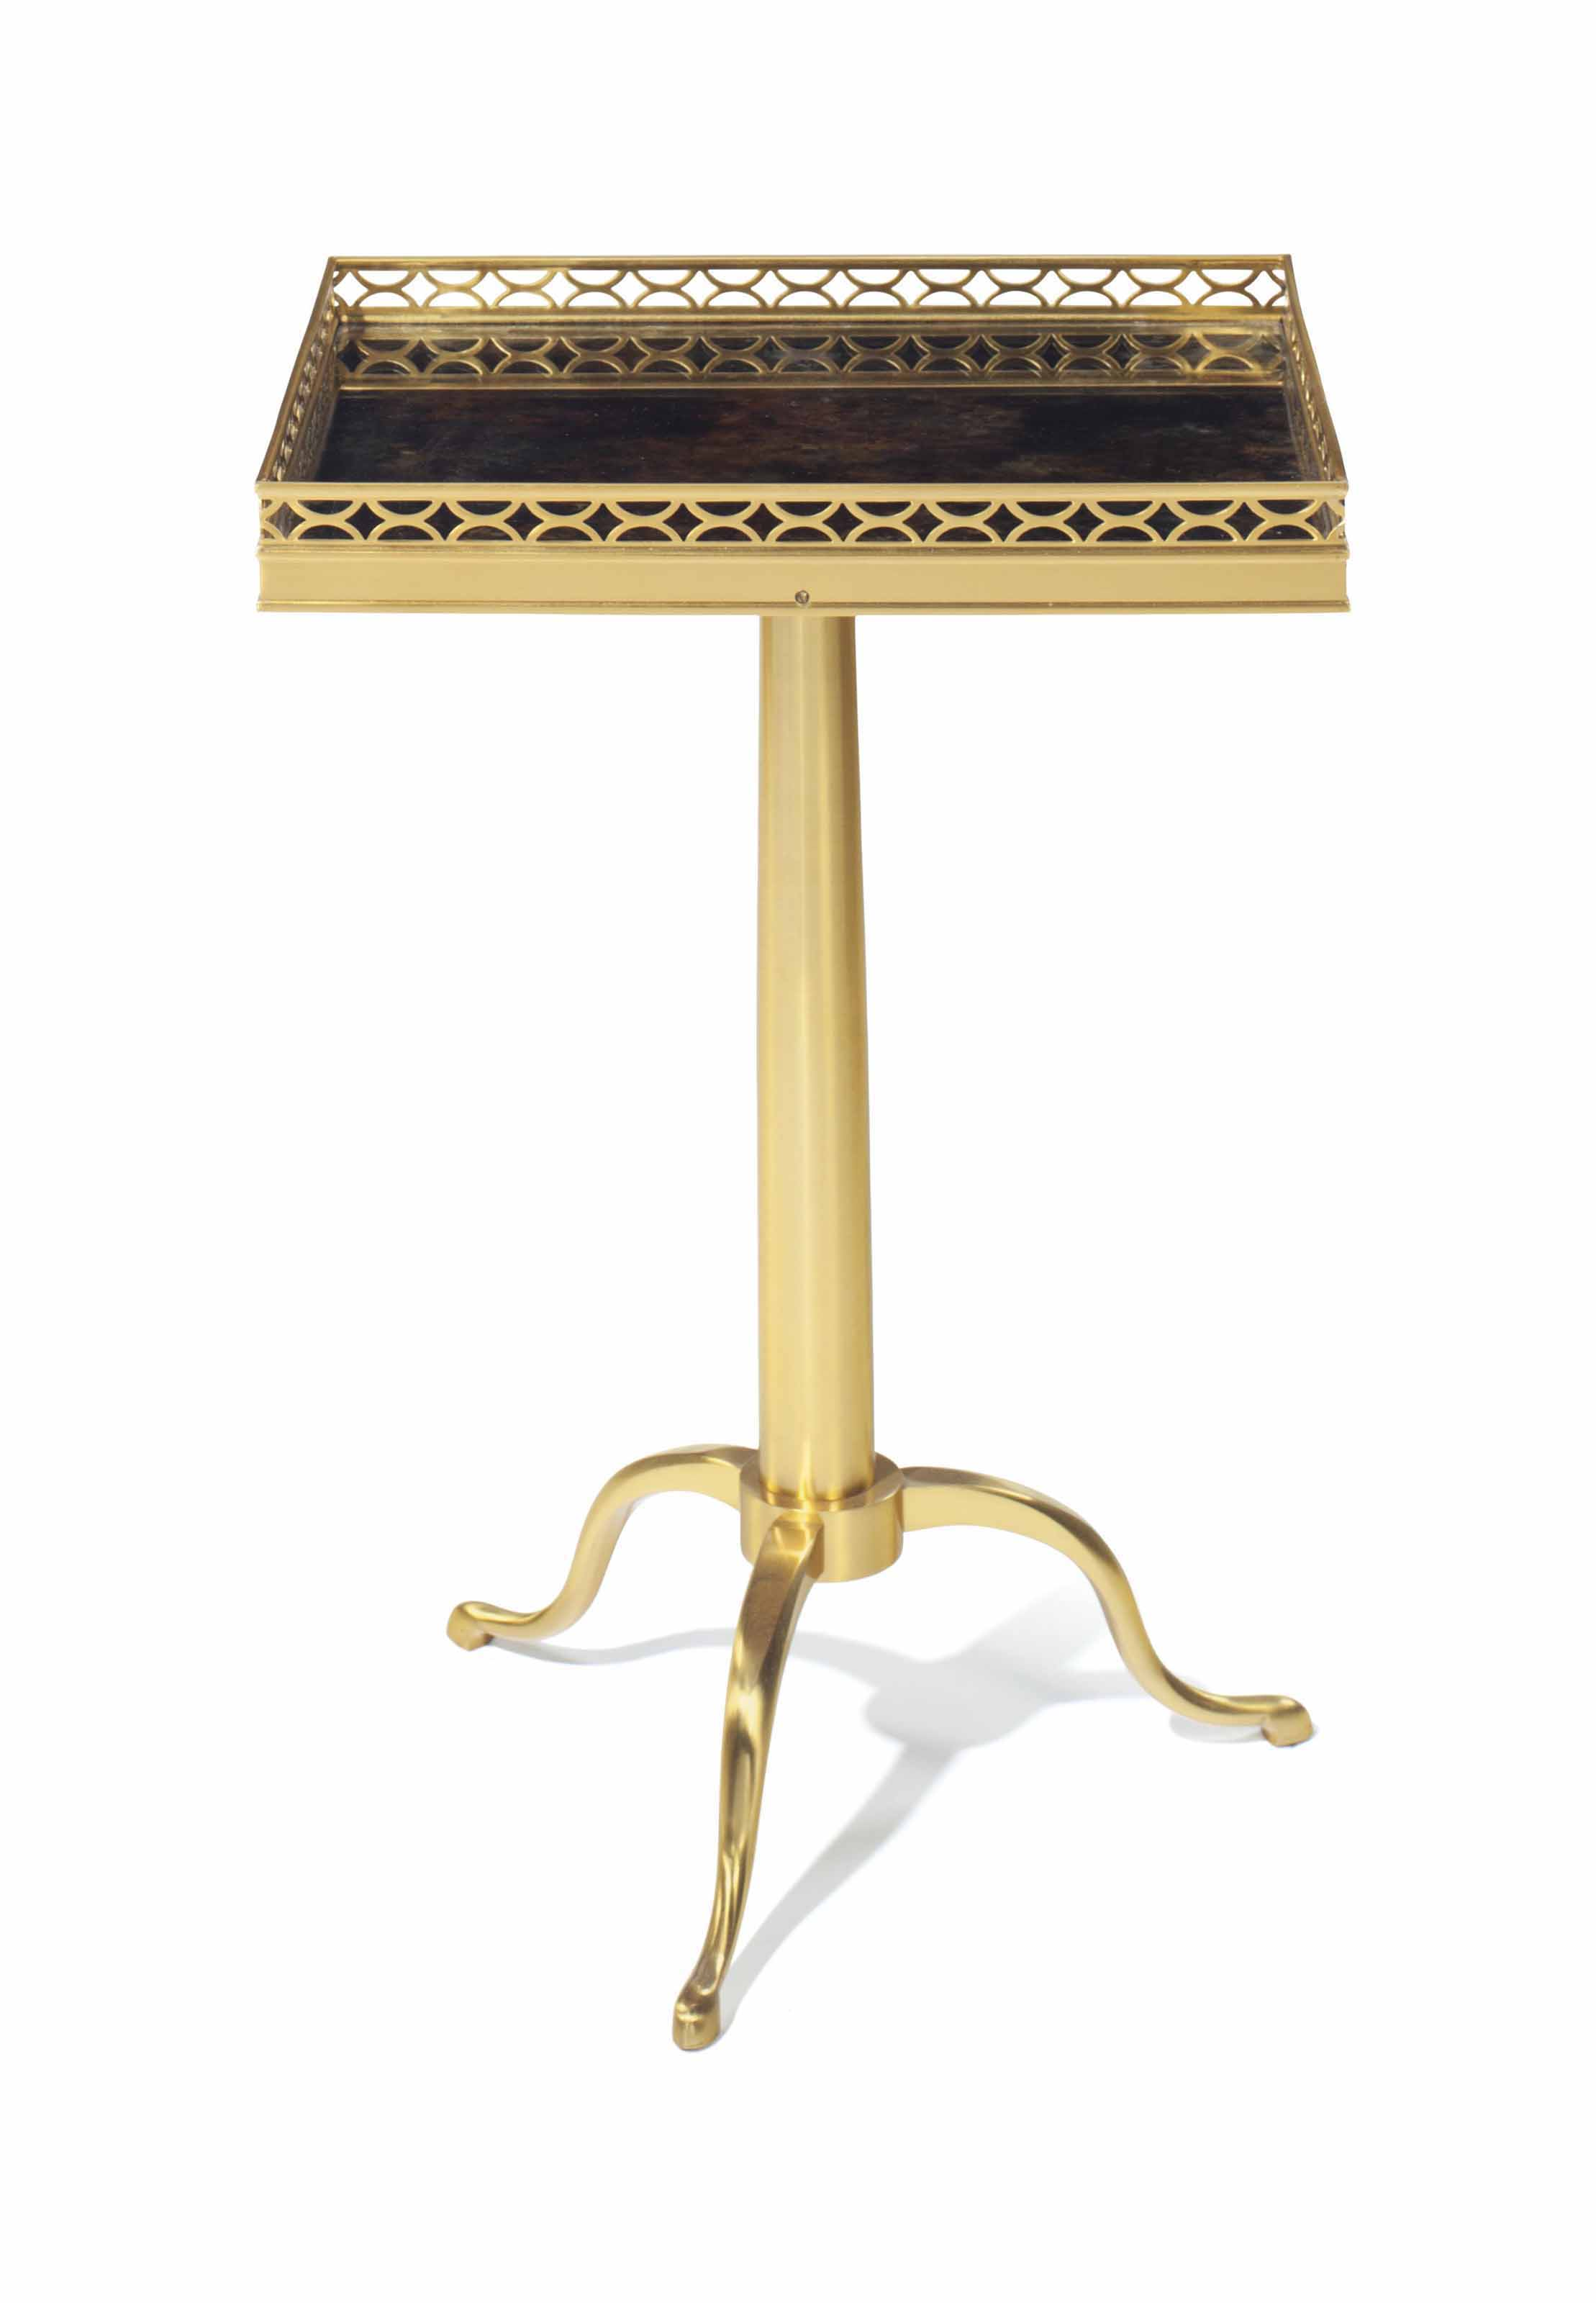 A BRASS TELESCOPING TABLE